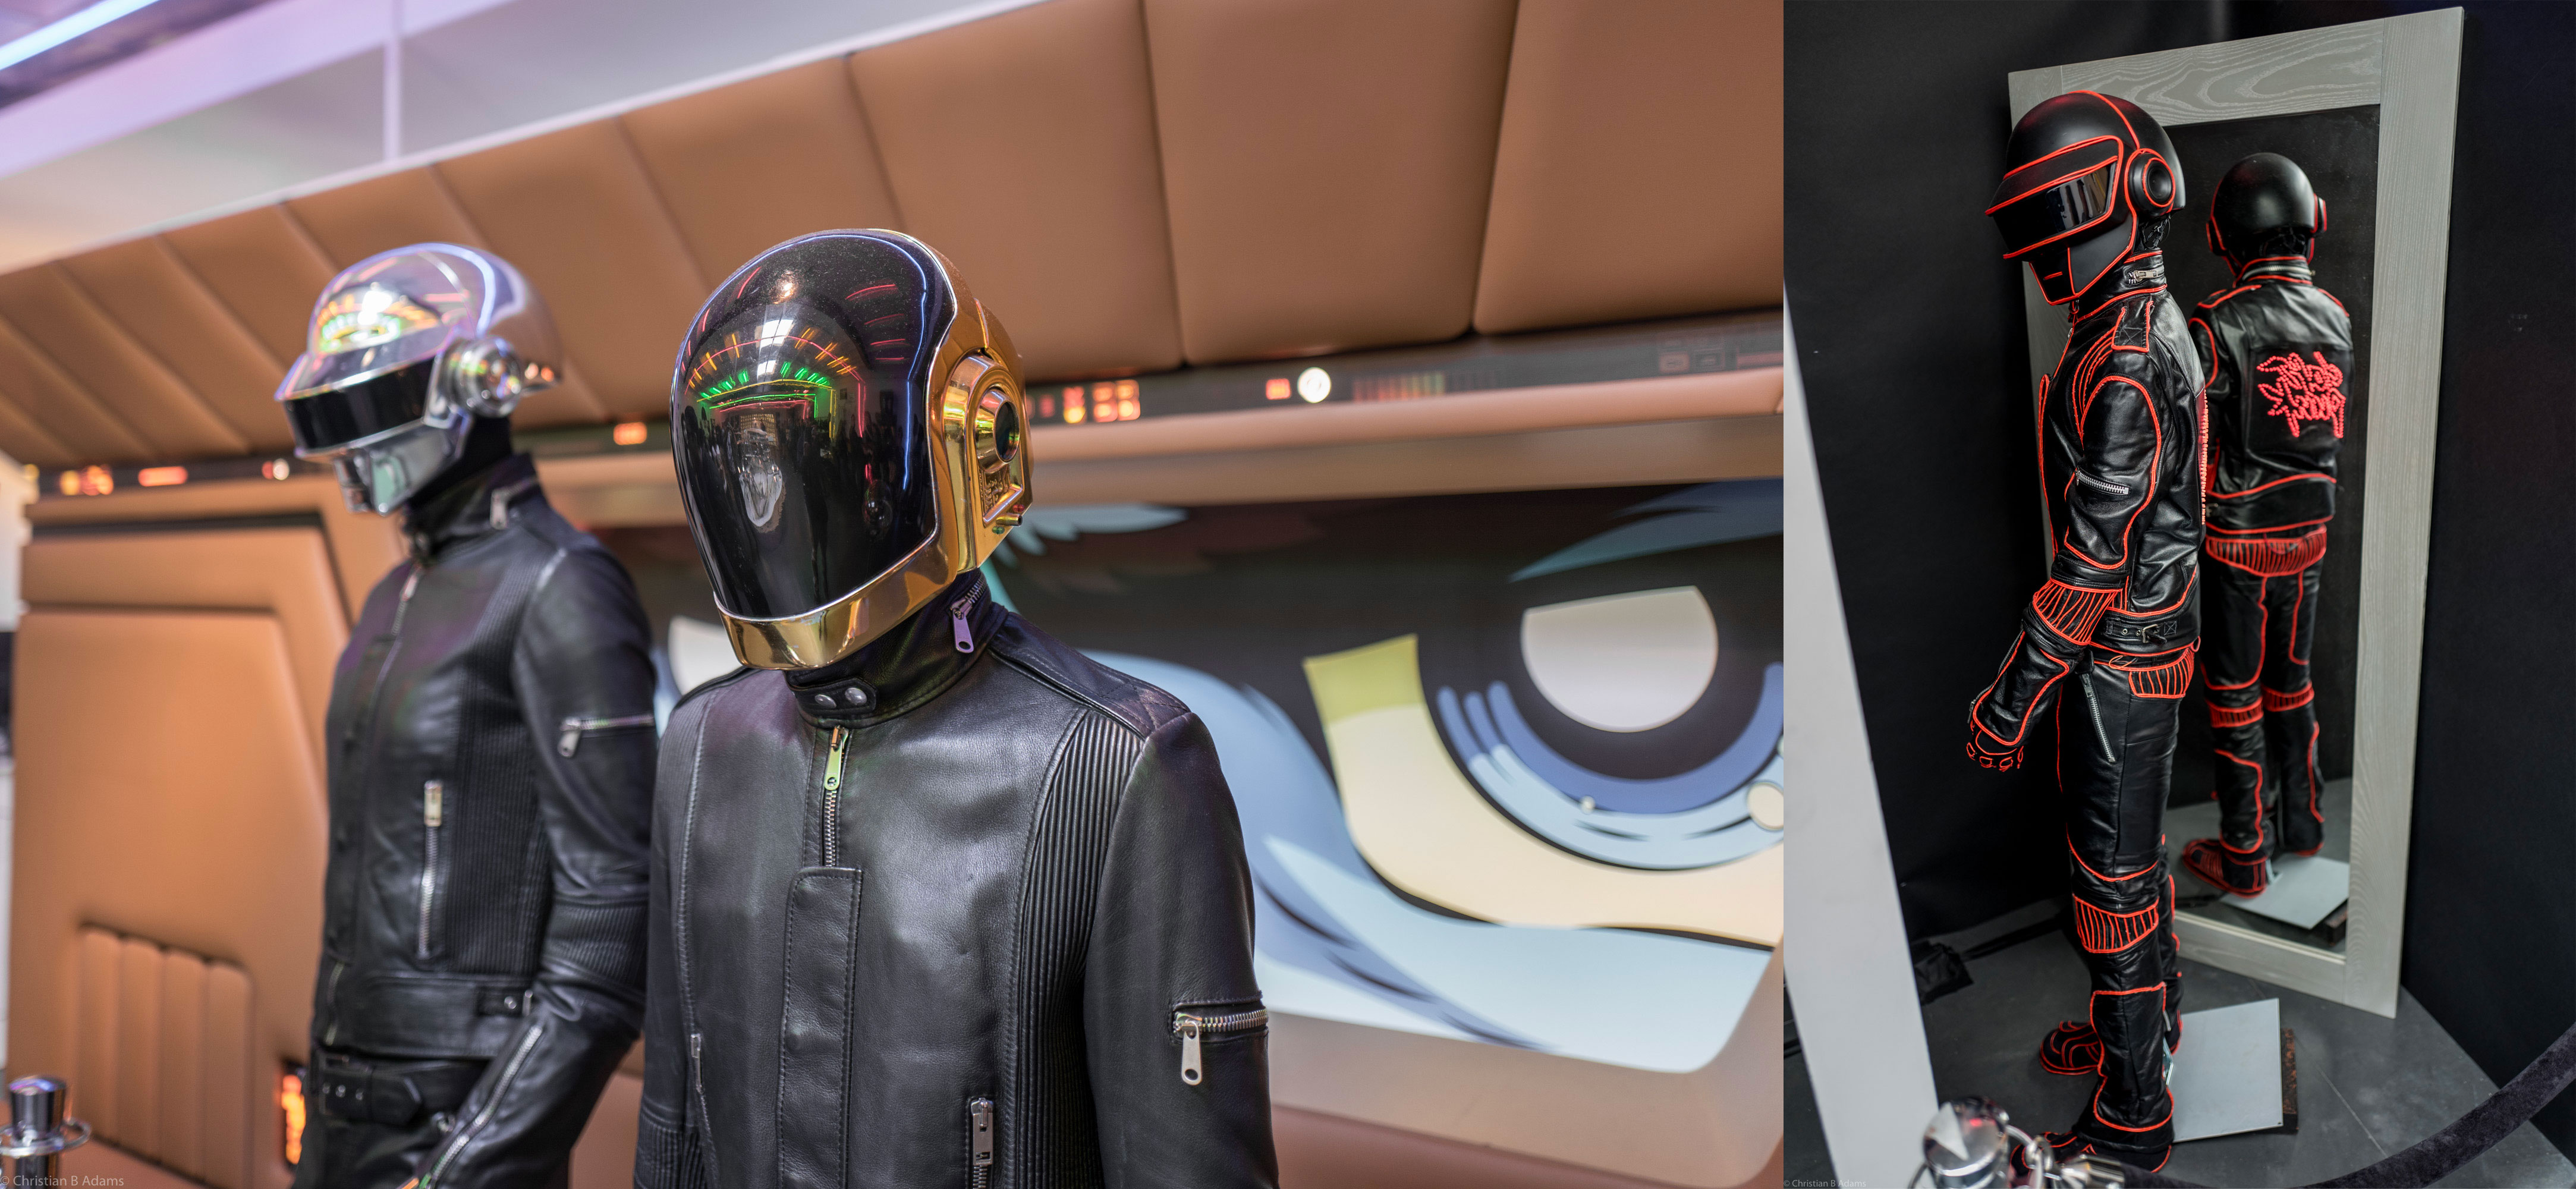 Human After All / Electroma / Alive 2007 Robots on display at the Daft Punk Pop Up at Maxfield Gallery in Los Angeles in February of 2017.